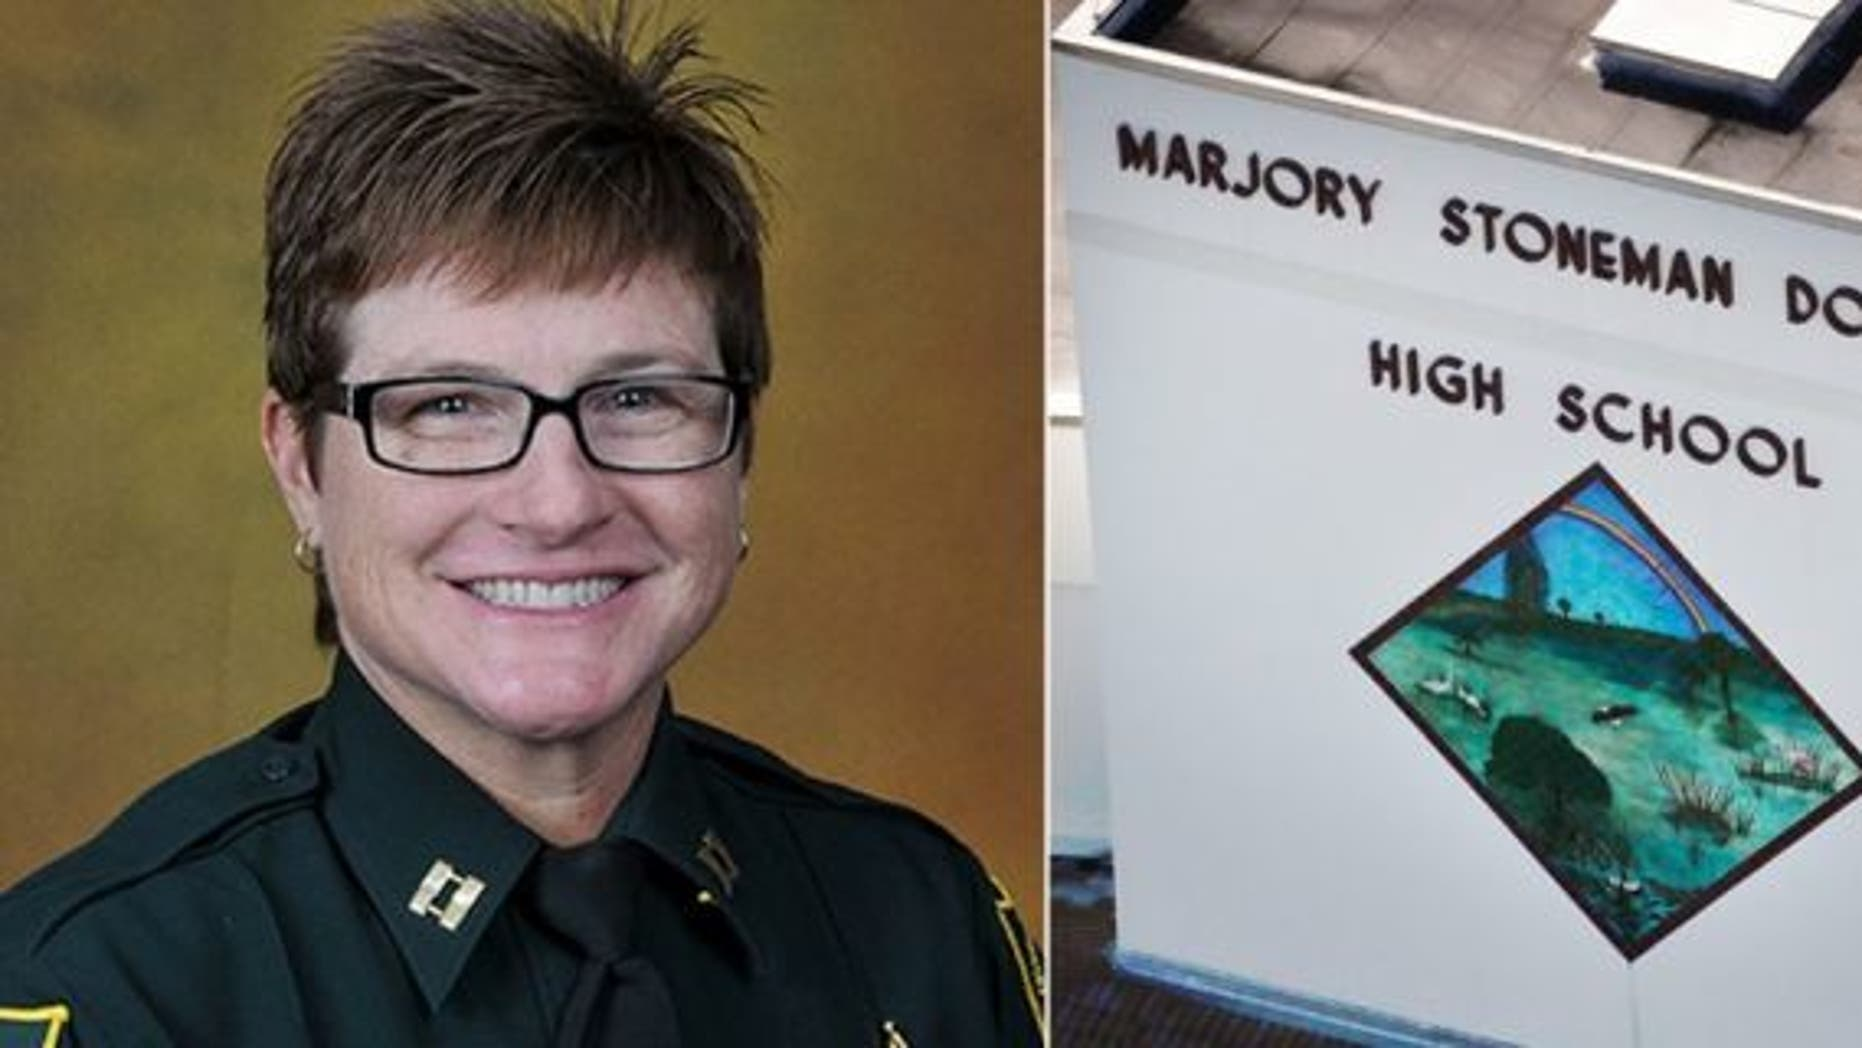 Broward County Sheriff's Capt.Jan Jordan submitted her resignation on Monday, effective Tuesday.